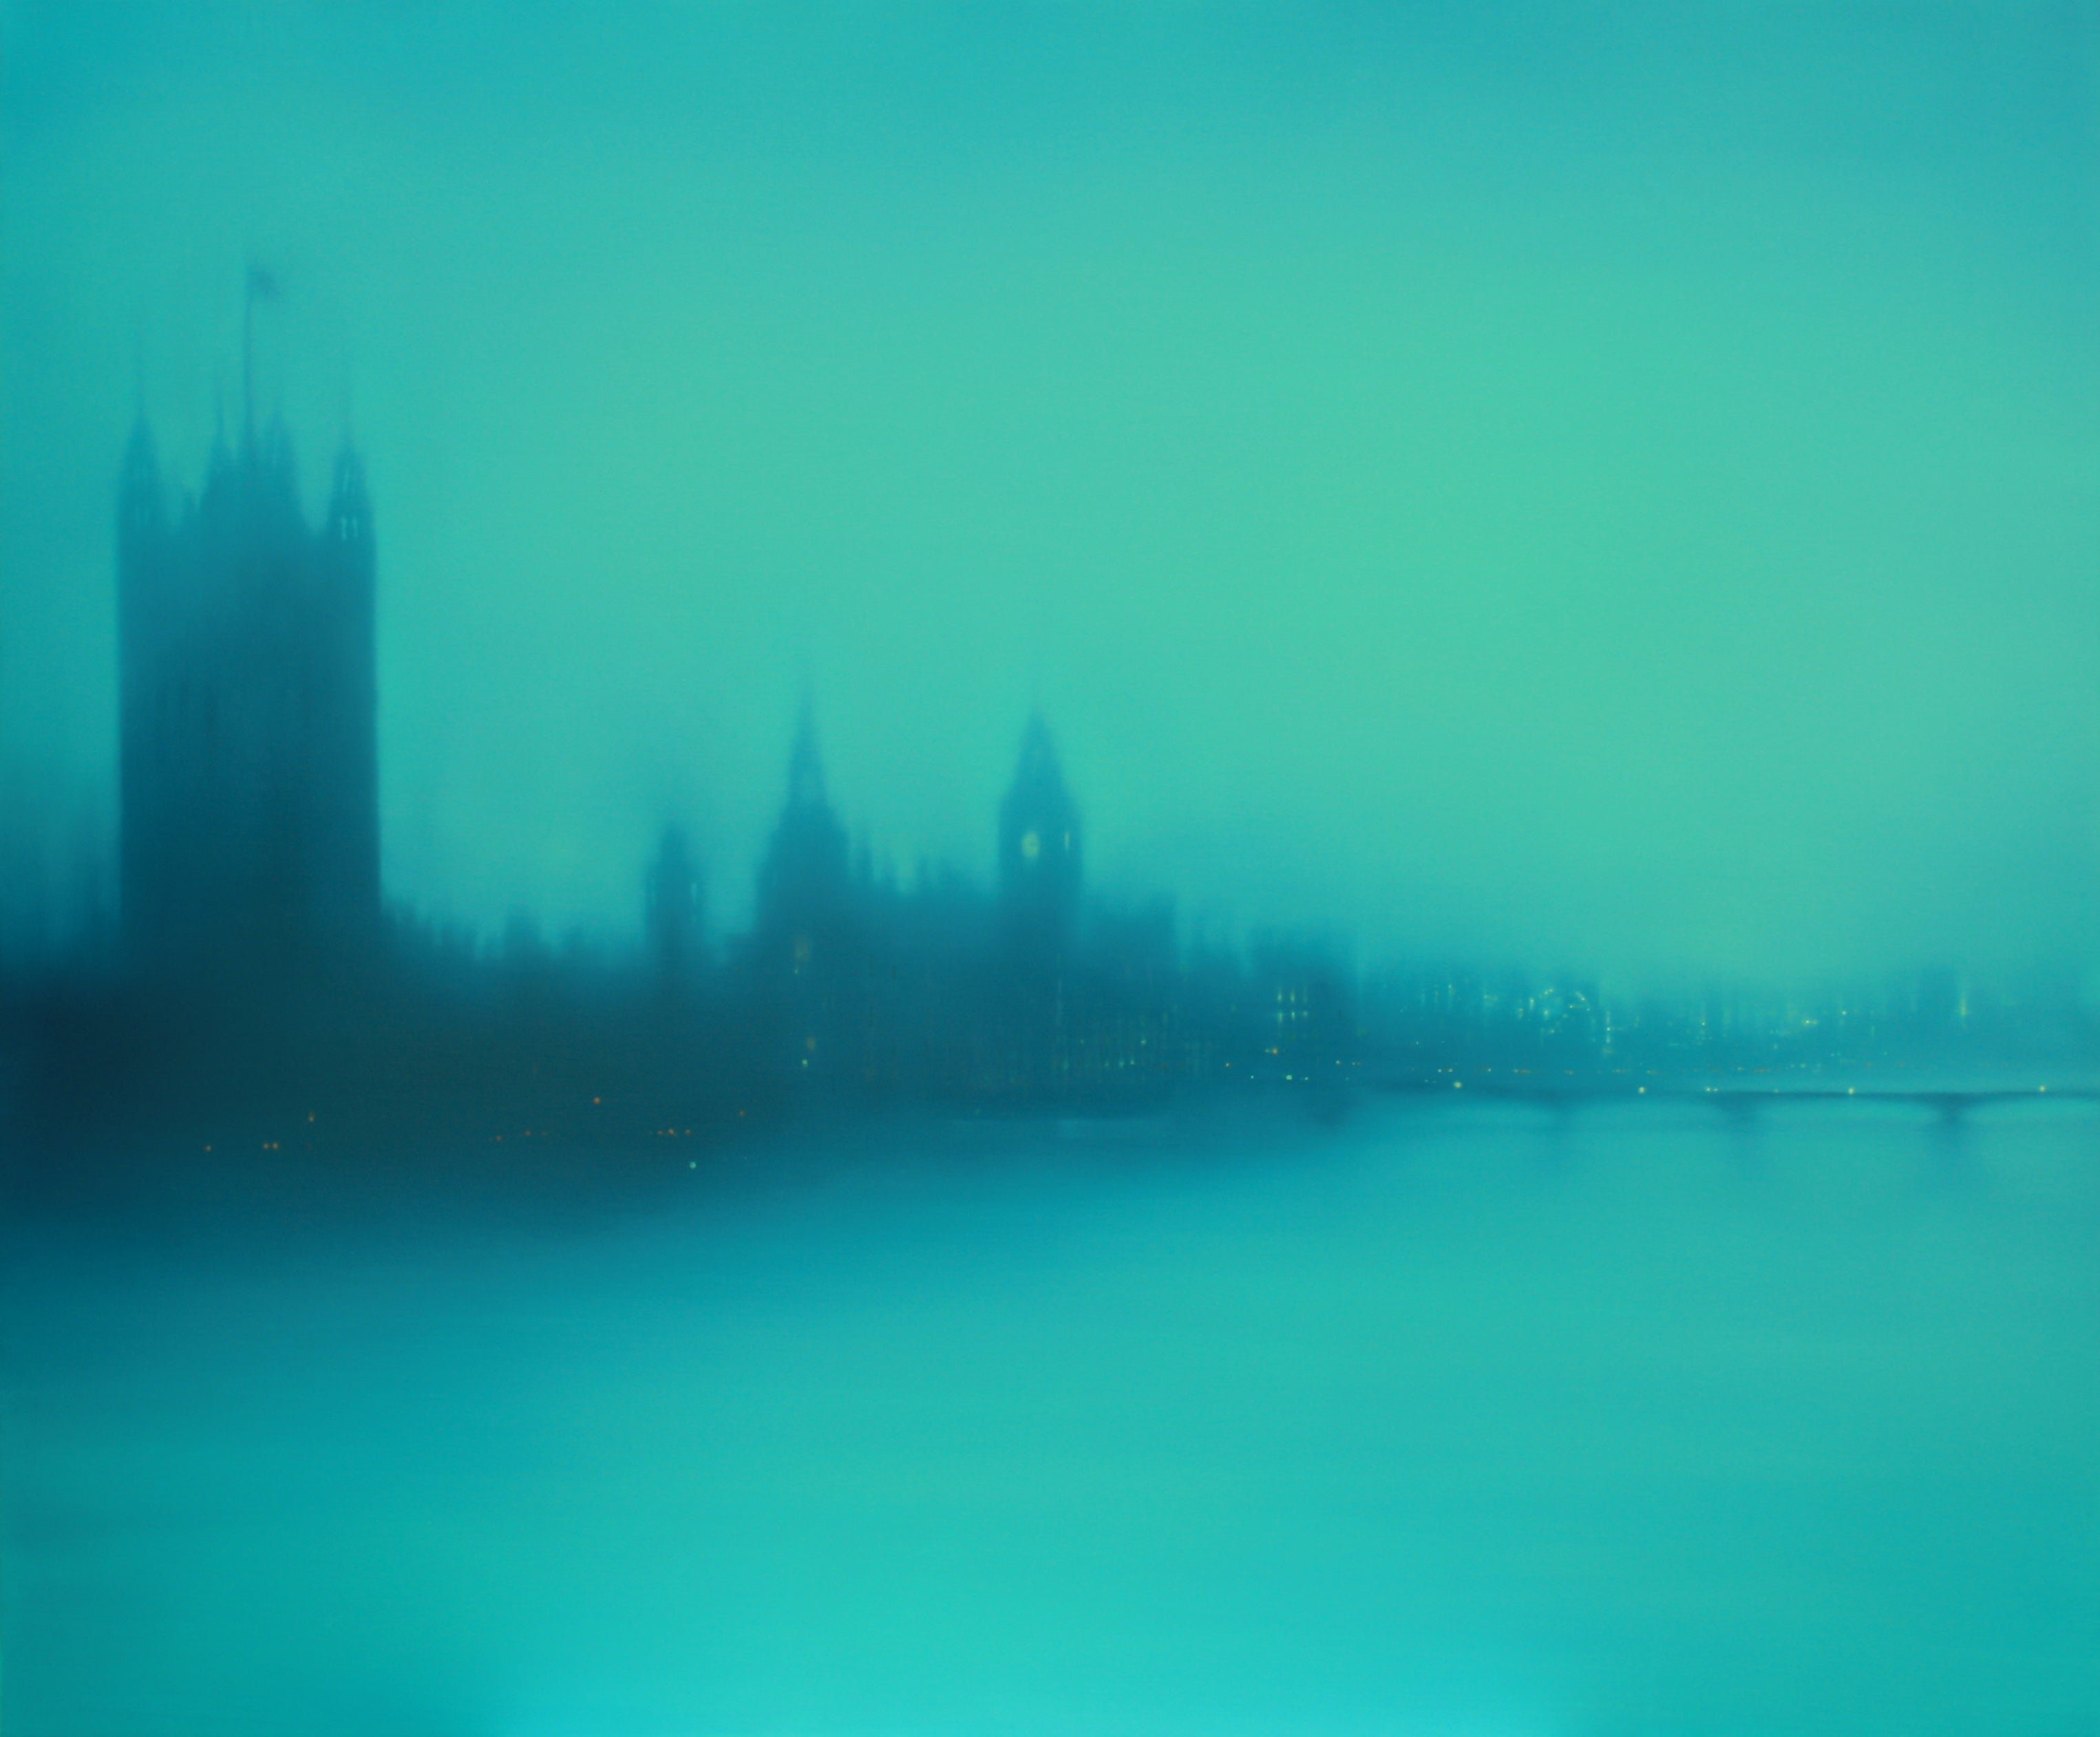 Emerald Westminster (London) Jenny Pockley. Original cityscape oil painting.